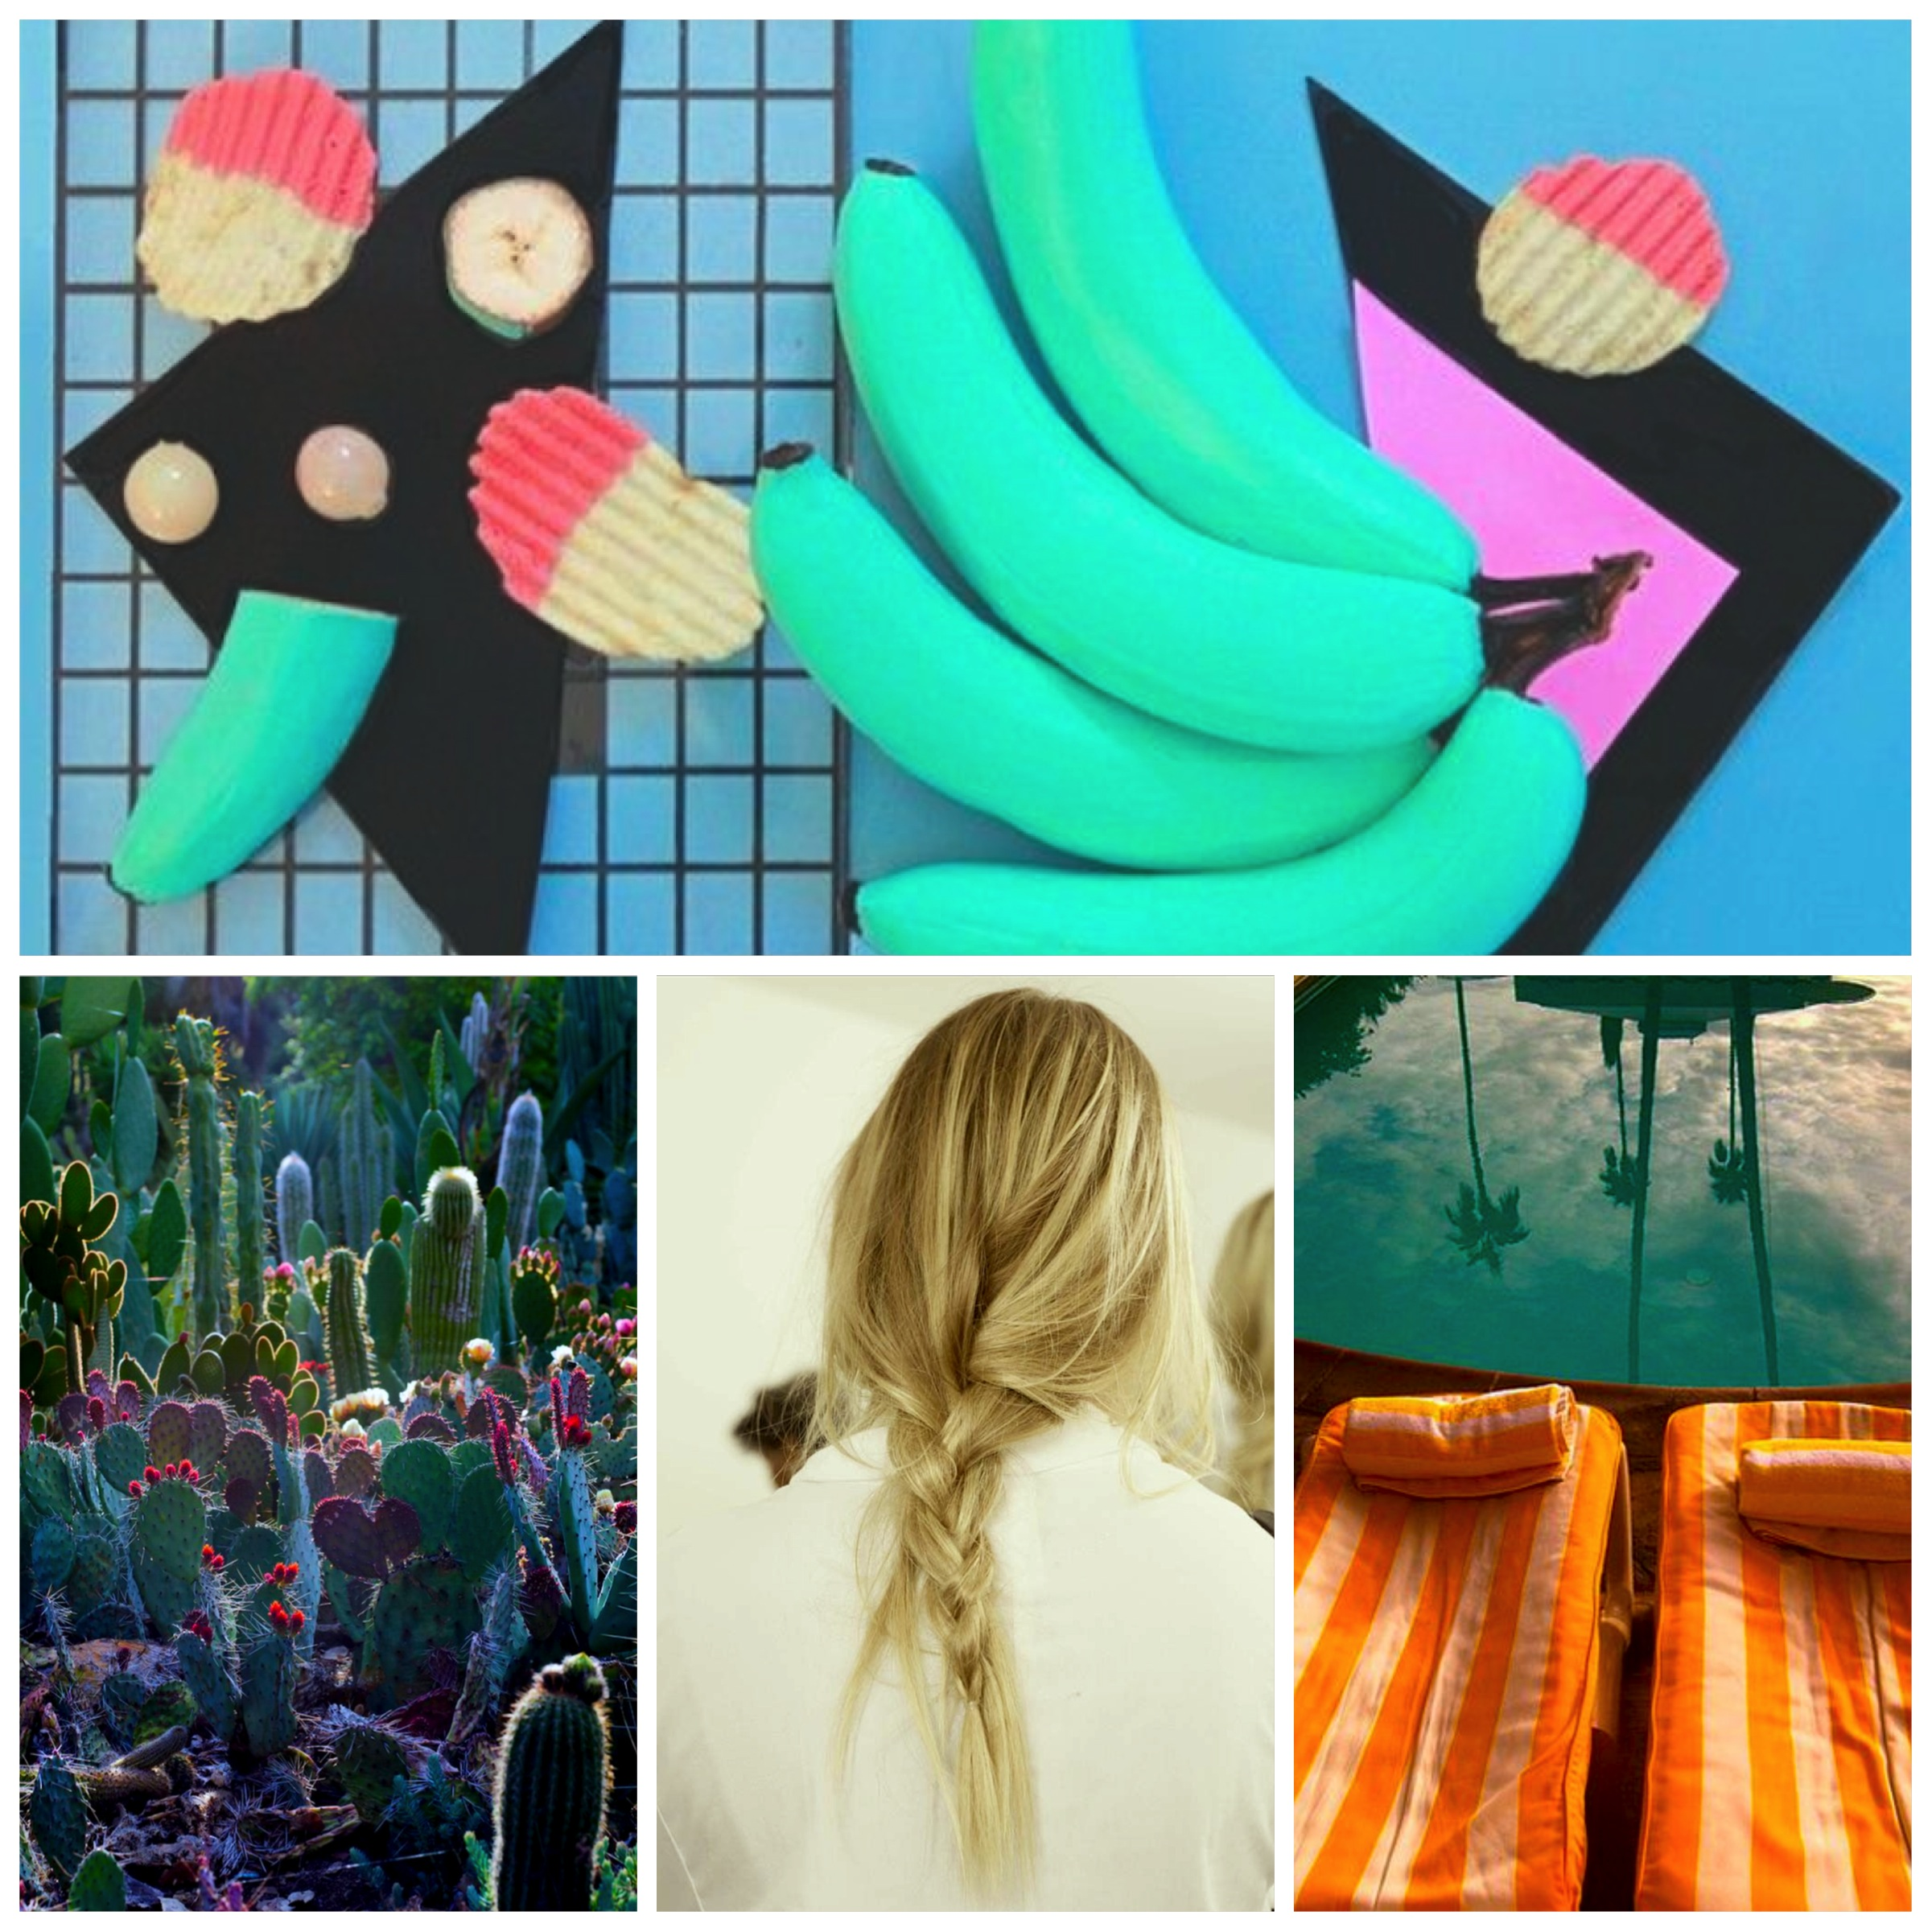 Inspiration Blog Fashion Style Lifestyle Hair Pinterest Cactus Art Design Banana Cool Vasare